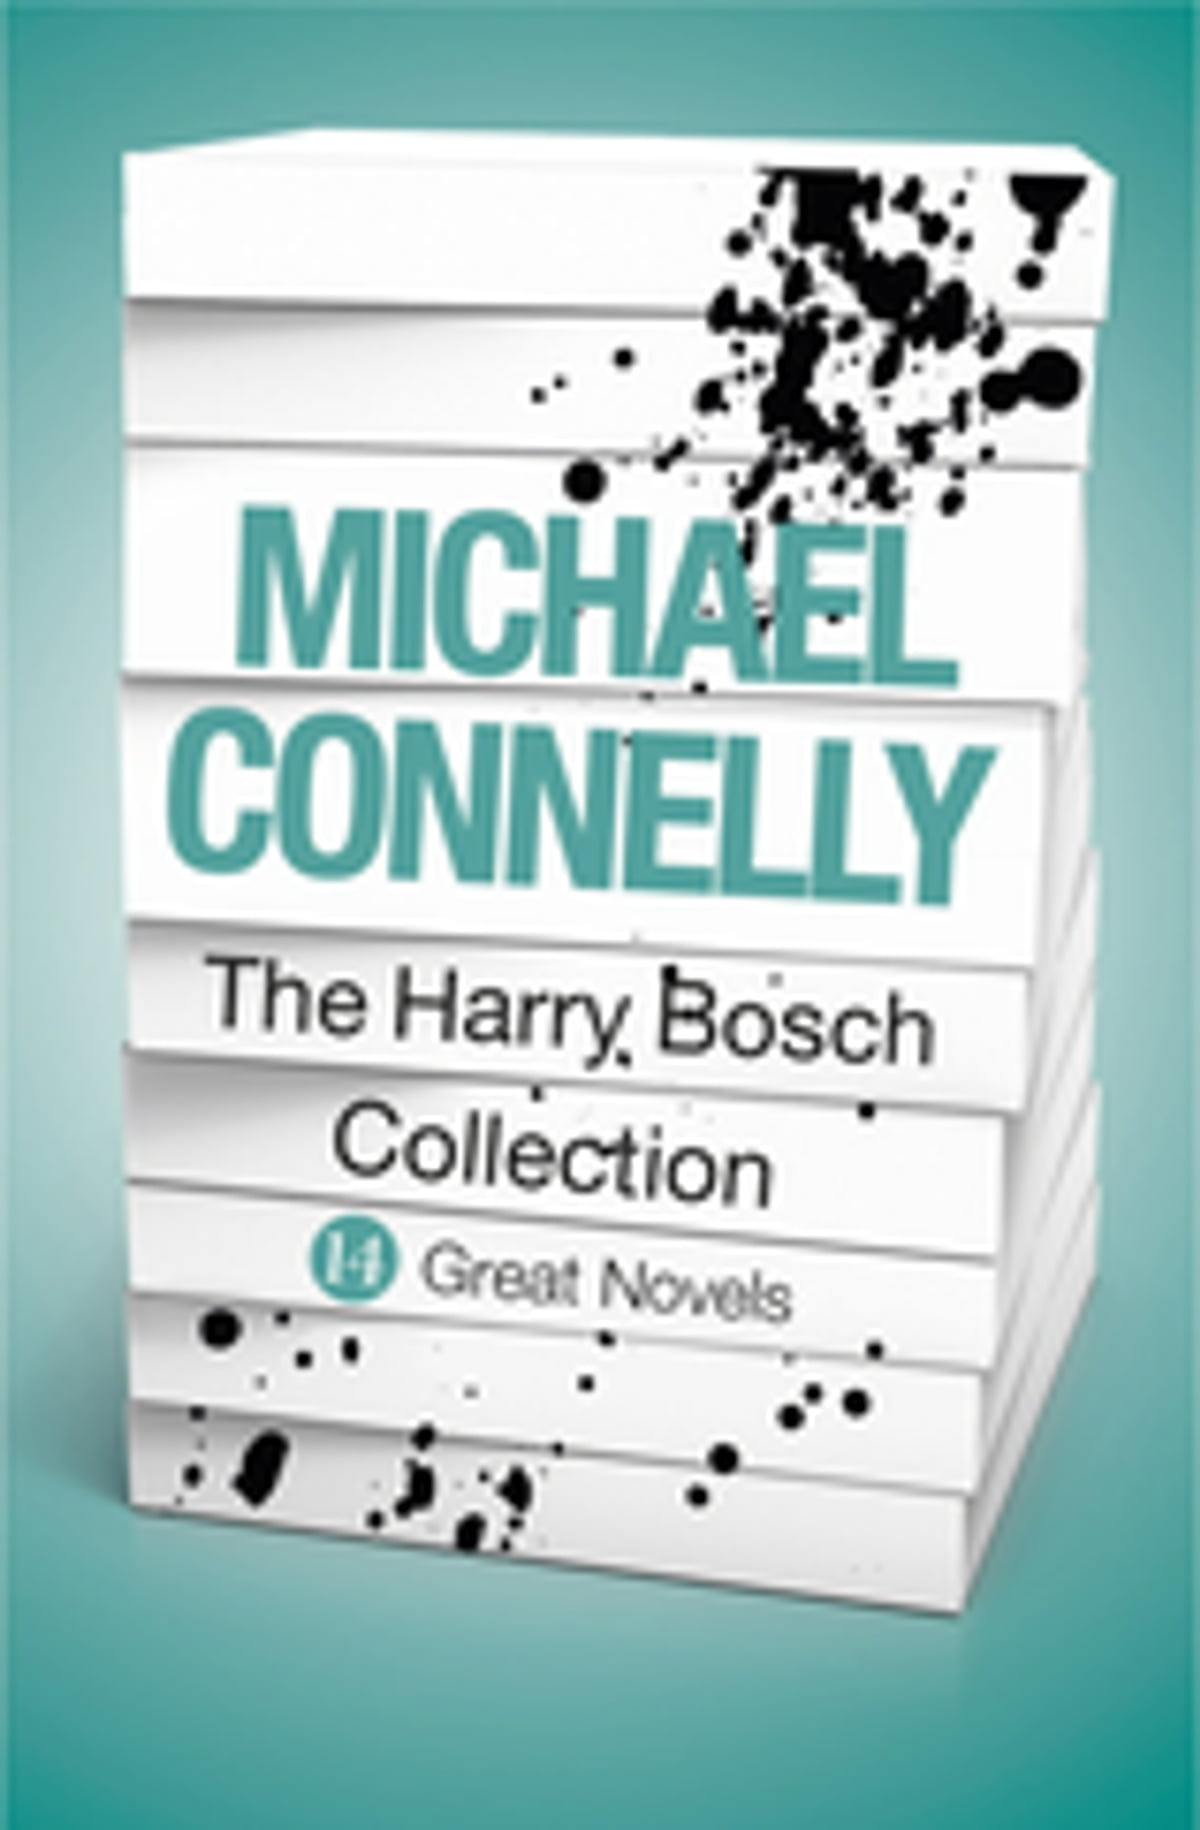 Michael Connelly  The Harry Bosch Collection (ebook) Ebook By Michael  Connelly  9781409138907  Rakuten Kobo